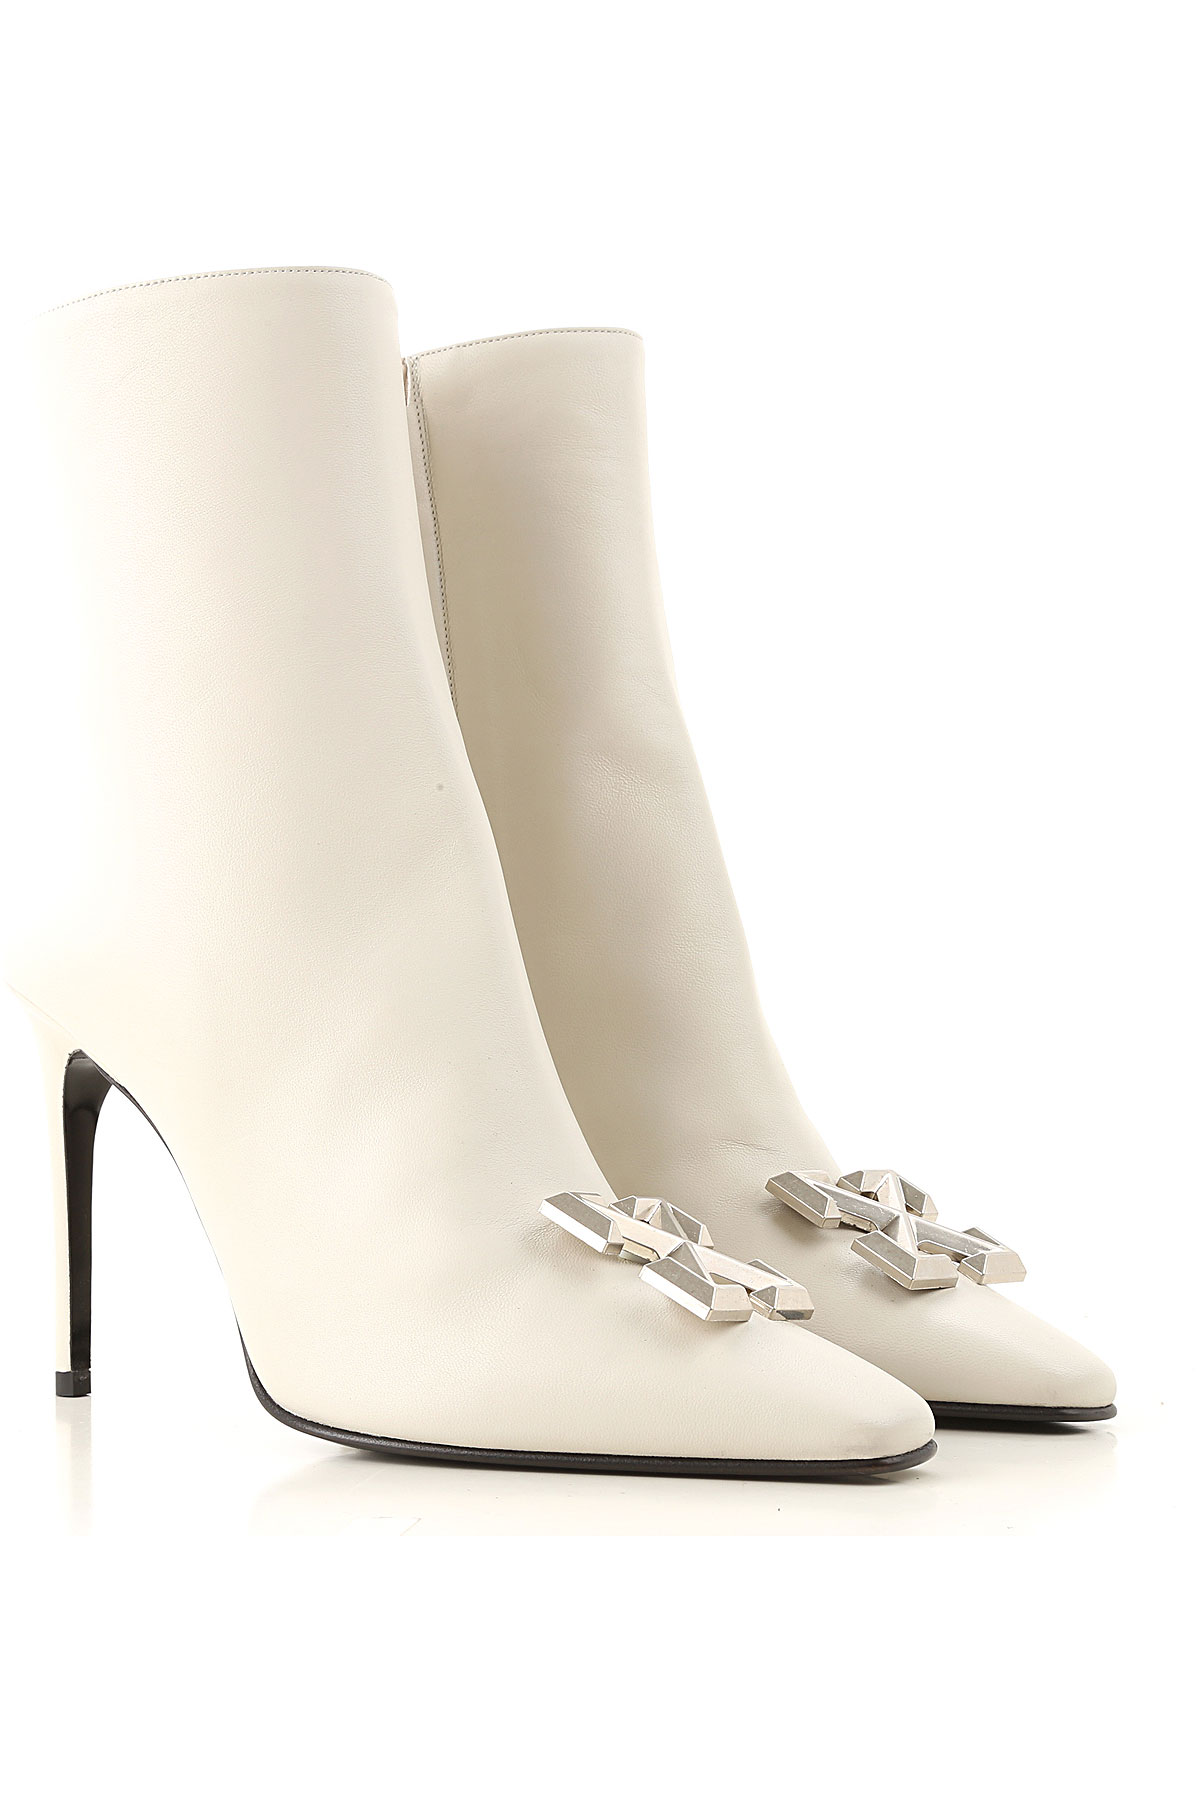 Off-White Virgil Abloh Boots for Women, Booties On Sale, Ice Grey, 2019, 7